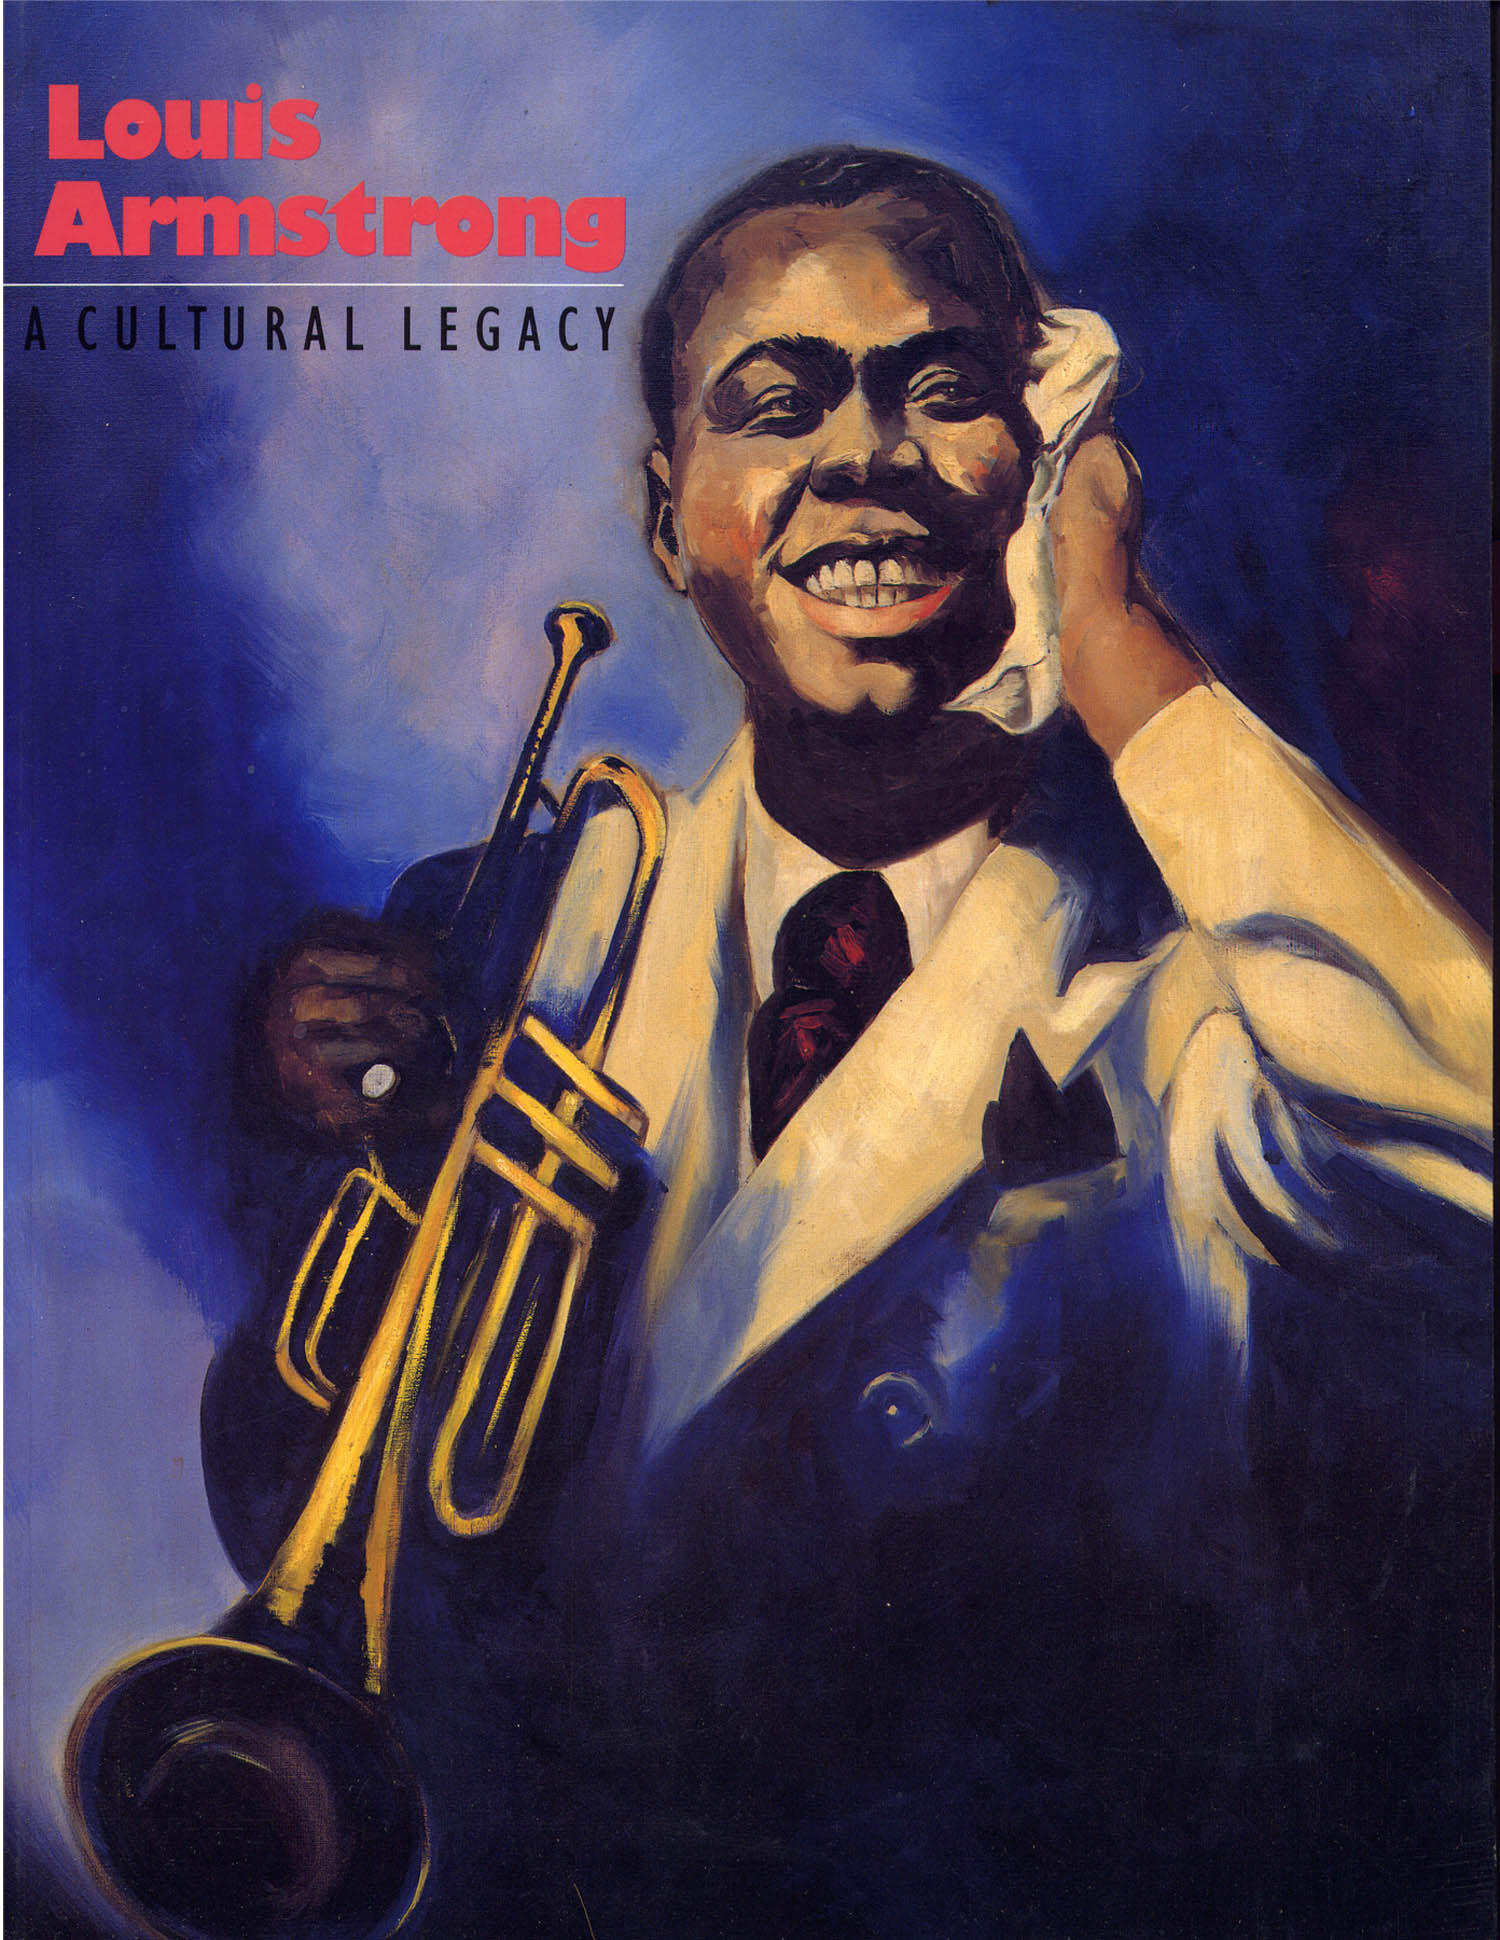 Catalogue for Louis Armstrong: A Cultural Legacy (University of Washington Press, 1994). Painting by Calvin Bailey (1948) after a photograph by Anton Bruehl.  Painting owned by the Louis Armstrong House.